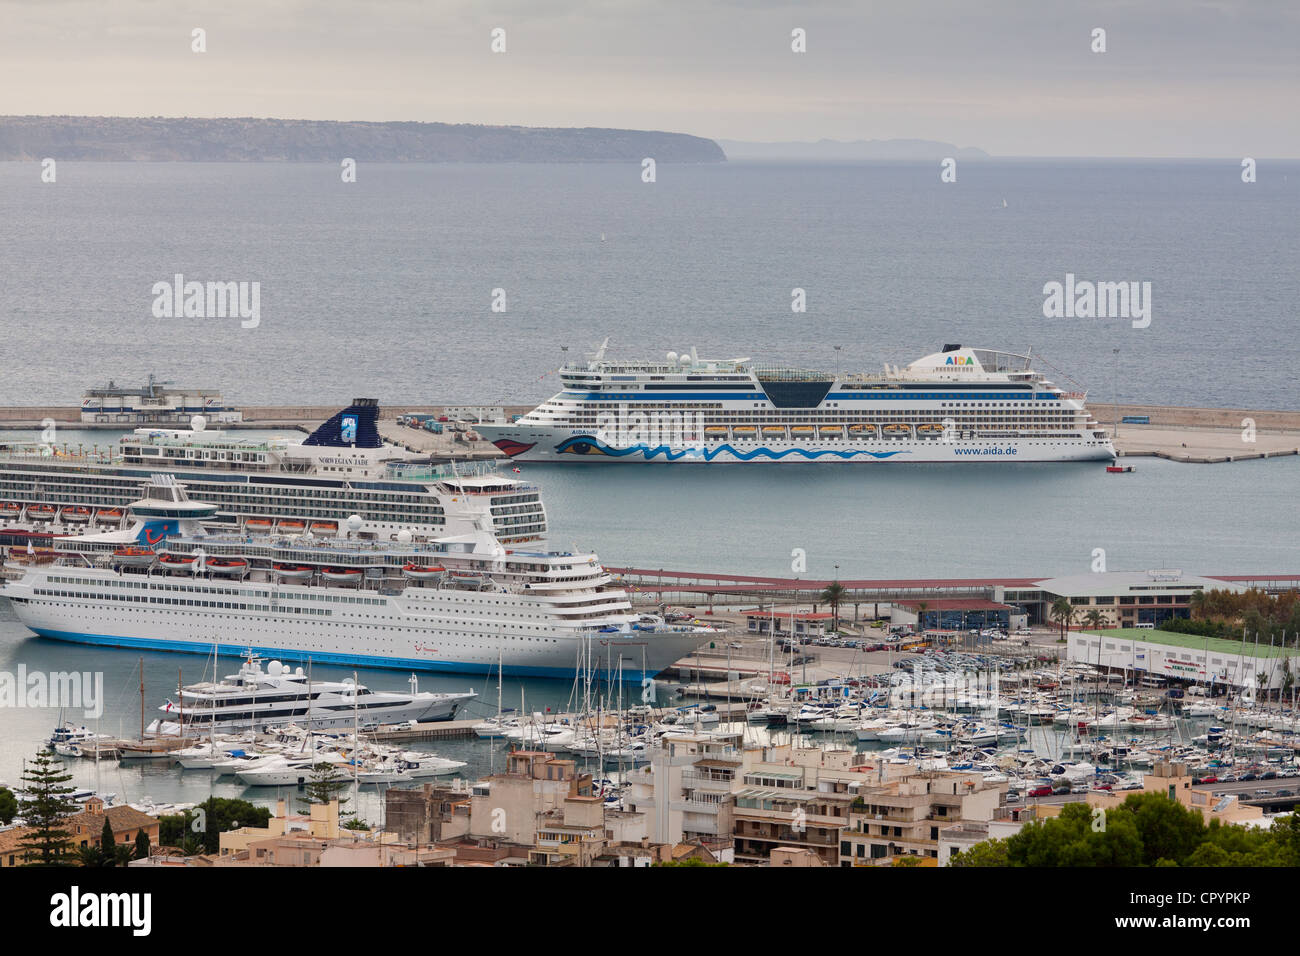 Cruise ships, AIDAbella, Norwegian Jade, and the Thomson Destiny in the port of Palma, Majorca, Balearic Islands, Stock Photo